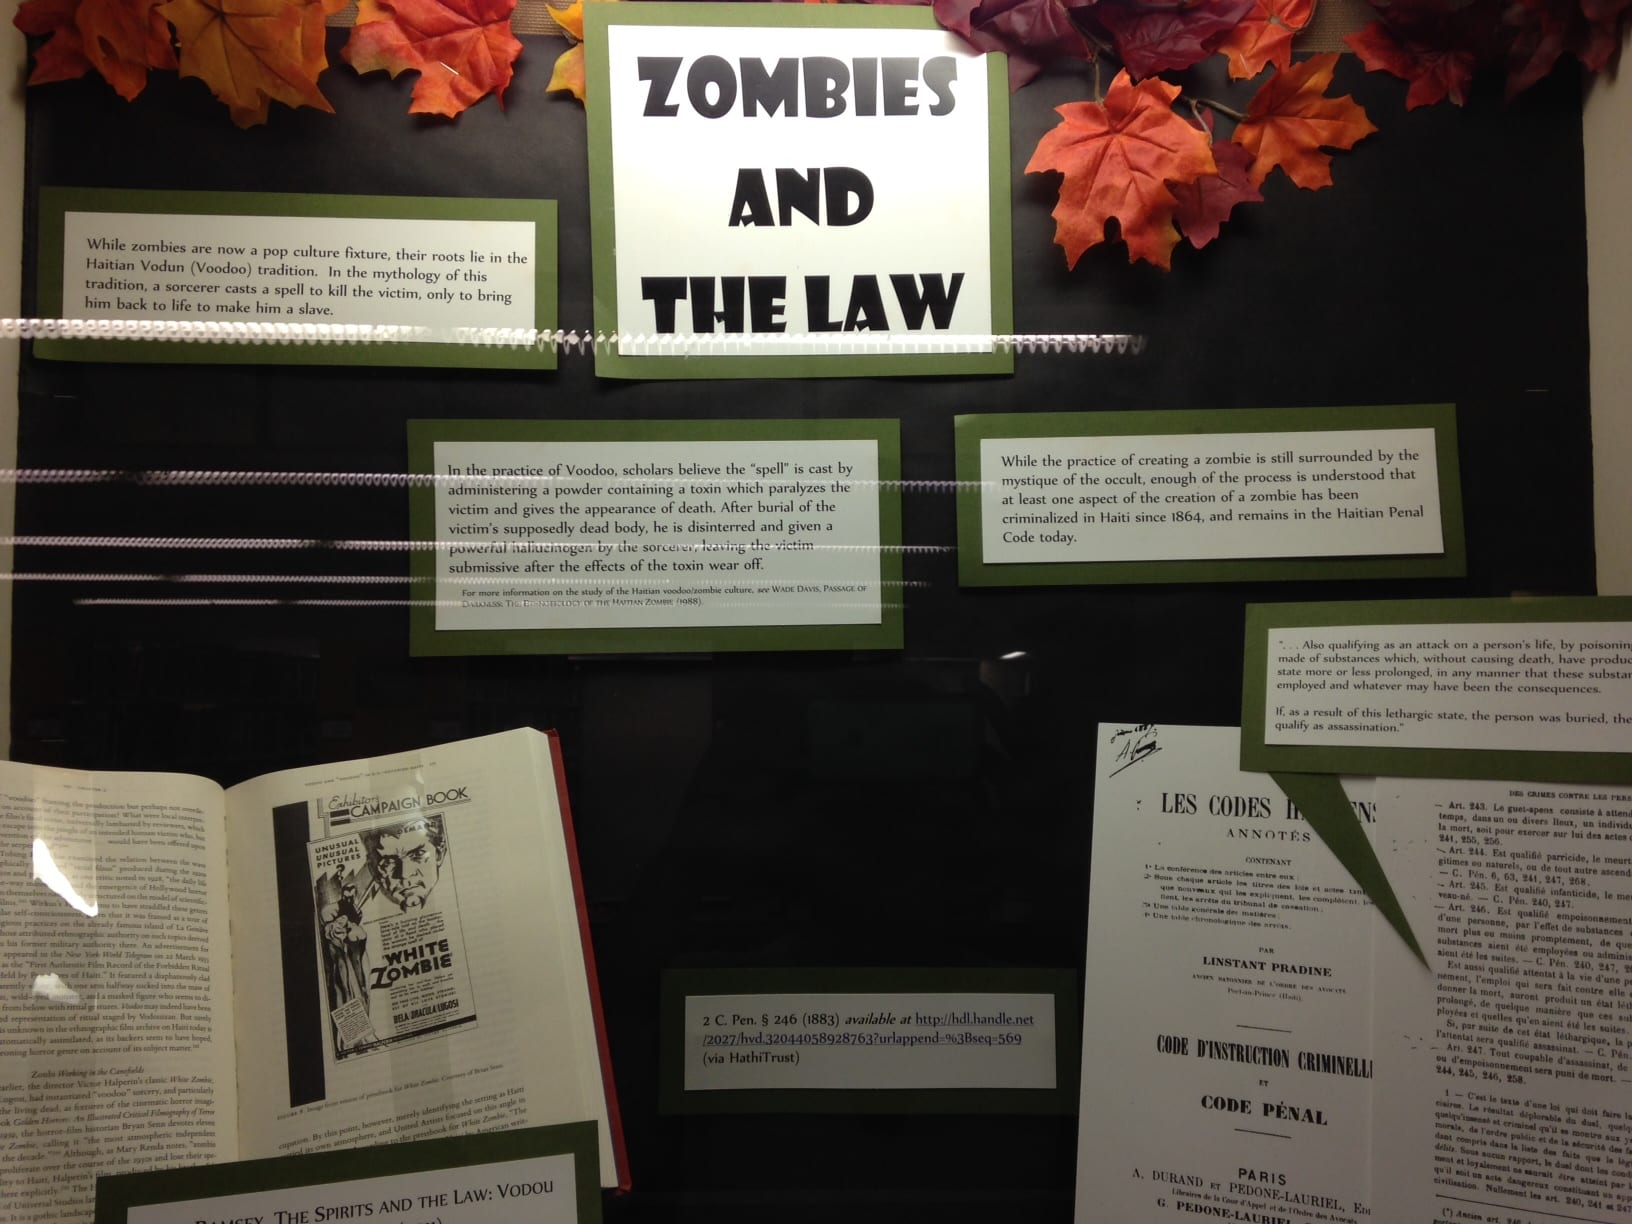 Zombies and the Law